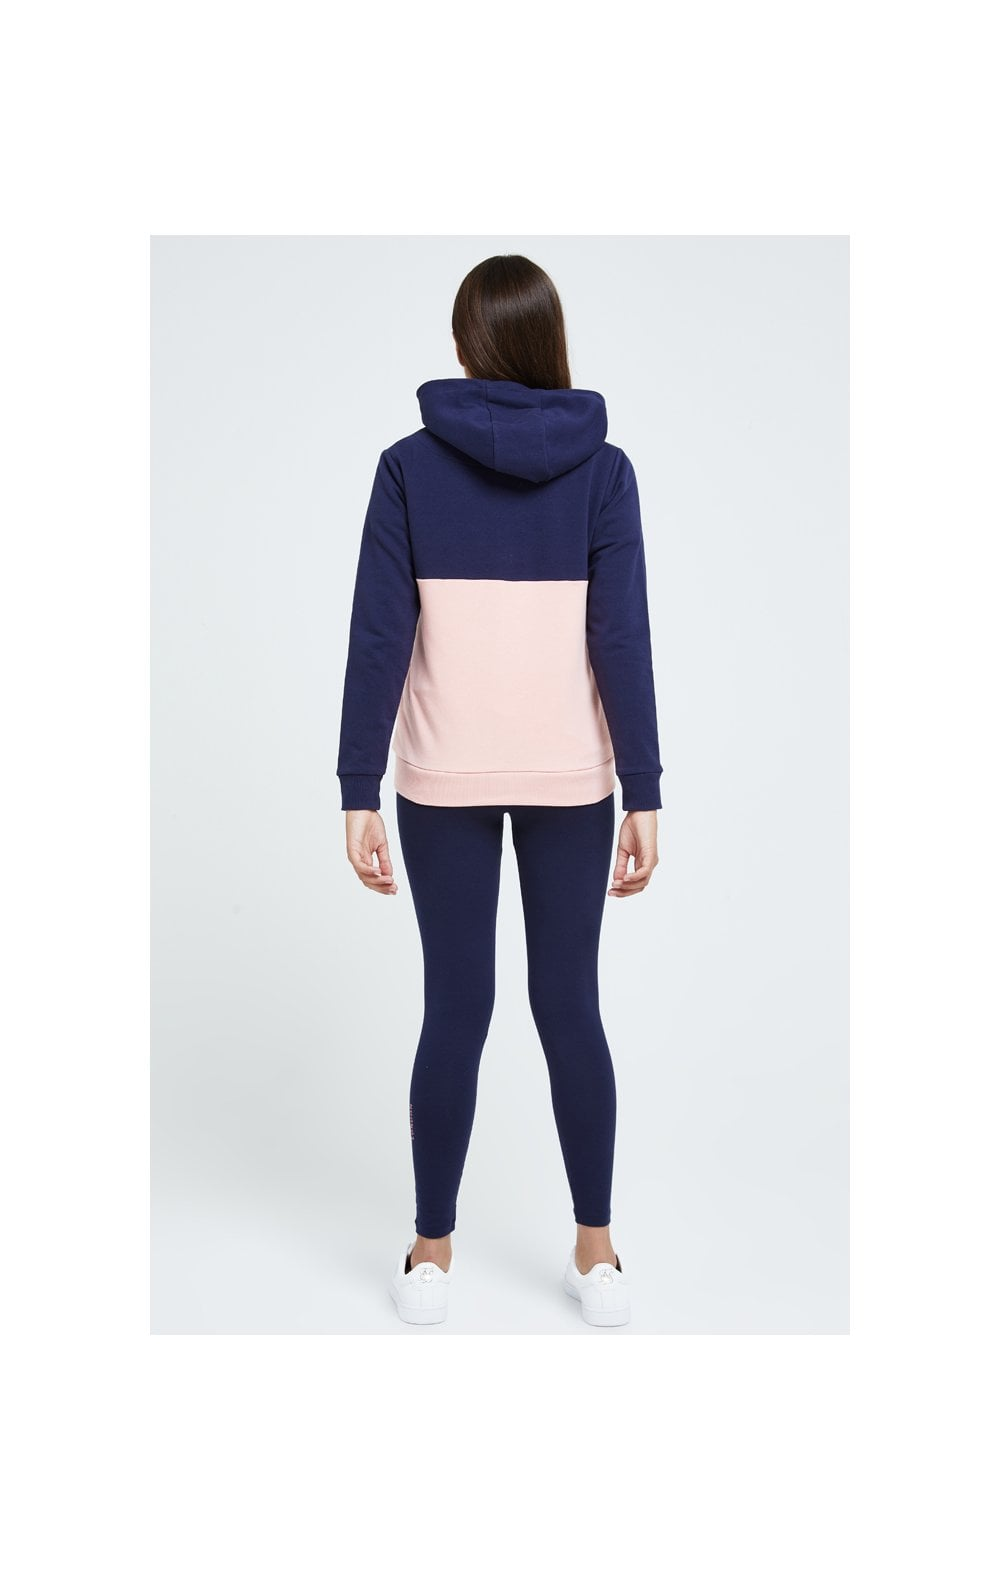 Load image into Gallery viewer, Illusive London Colour Block Hoodie - Navy & Pink (4)